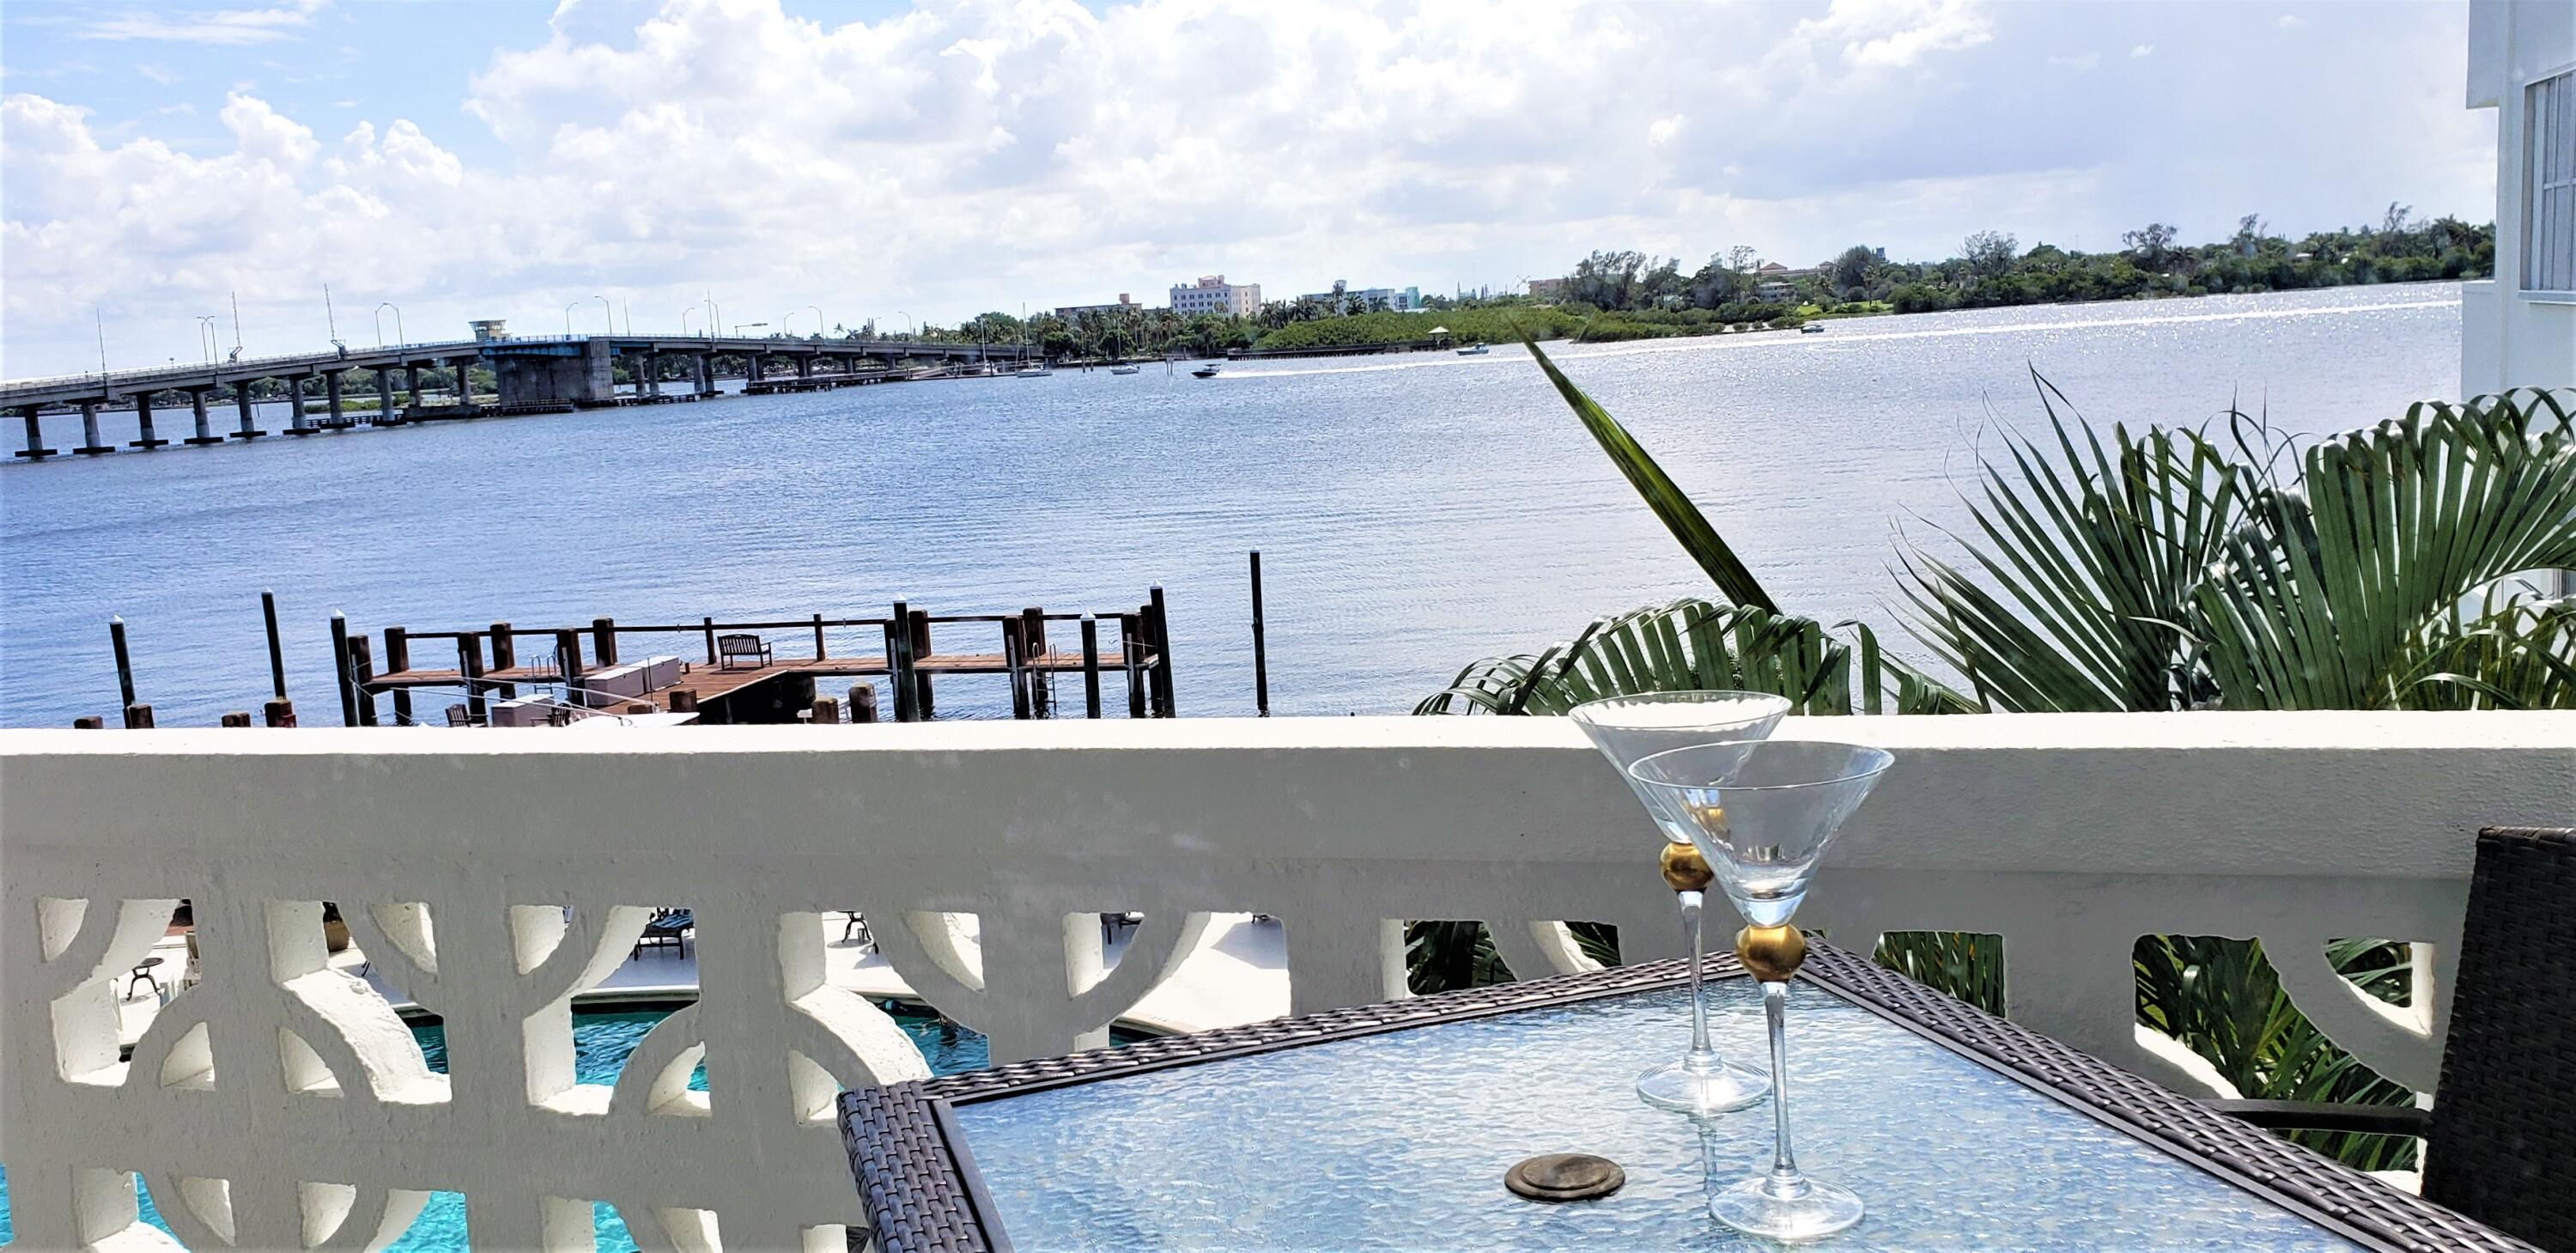 Capture this rare opportunity to own a one bedroom condo, in the town of Palm Beach, with direct Intracoastal views from every room!  Don't pay for renovations you don't really like. Bring your decorator and make this gem your own. This co-op requires cash only purchases and rentals are allowed every other year after the first year of ownership. The Royal Saxon provides a 24 hour doorman, on sight building manager, laundry rooms on each floor, heated pool, fitness room, and community room. Dock space is available for an extra fee of $5 sq ft/ mo. Located North of the Lake Ave Bridge and directly across the street from both The Four Seasons and Tidelines Resort. Don't miss out! It won't last long!